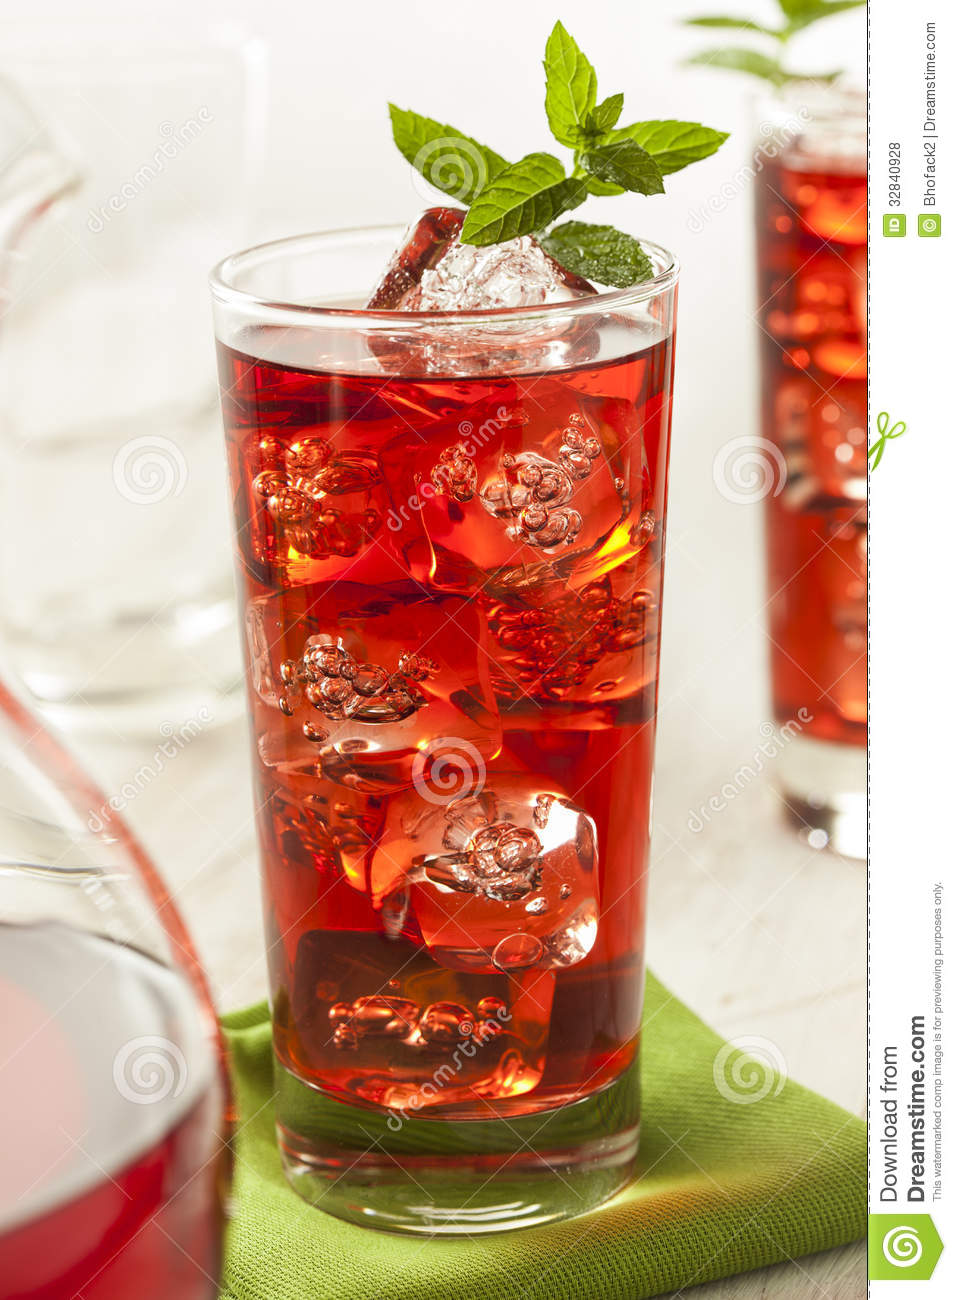 cold-refreshing-berry-hibiscus-ice-tea-iced-mint-32840928.jpg